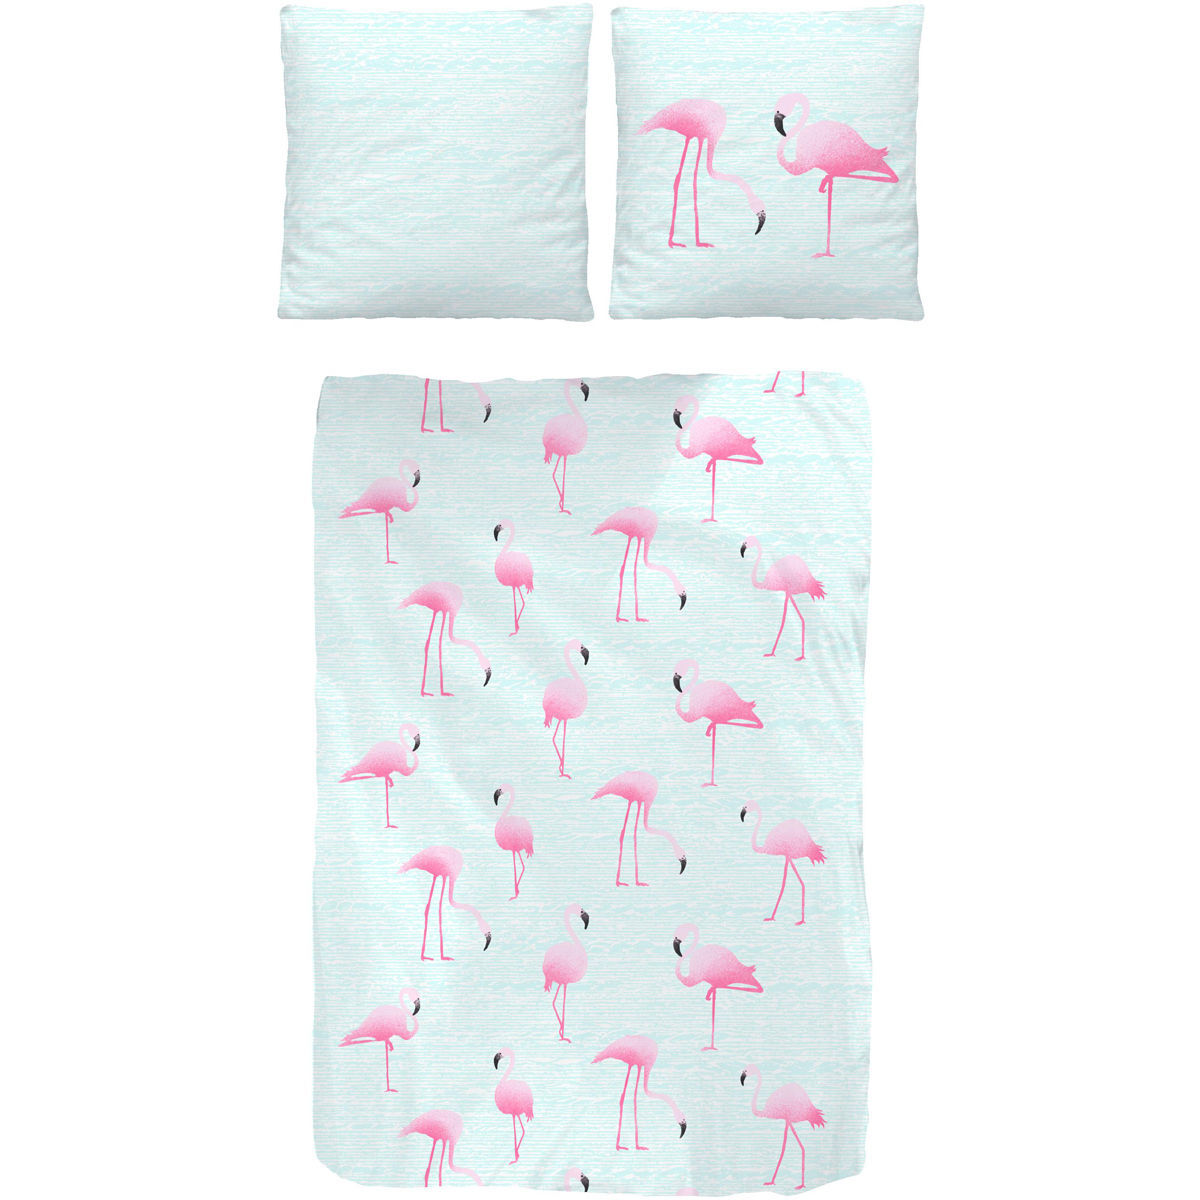 Druck Collect Ido Collection Druck Bettwäsche Flamingo 135x200 Cm